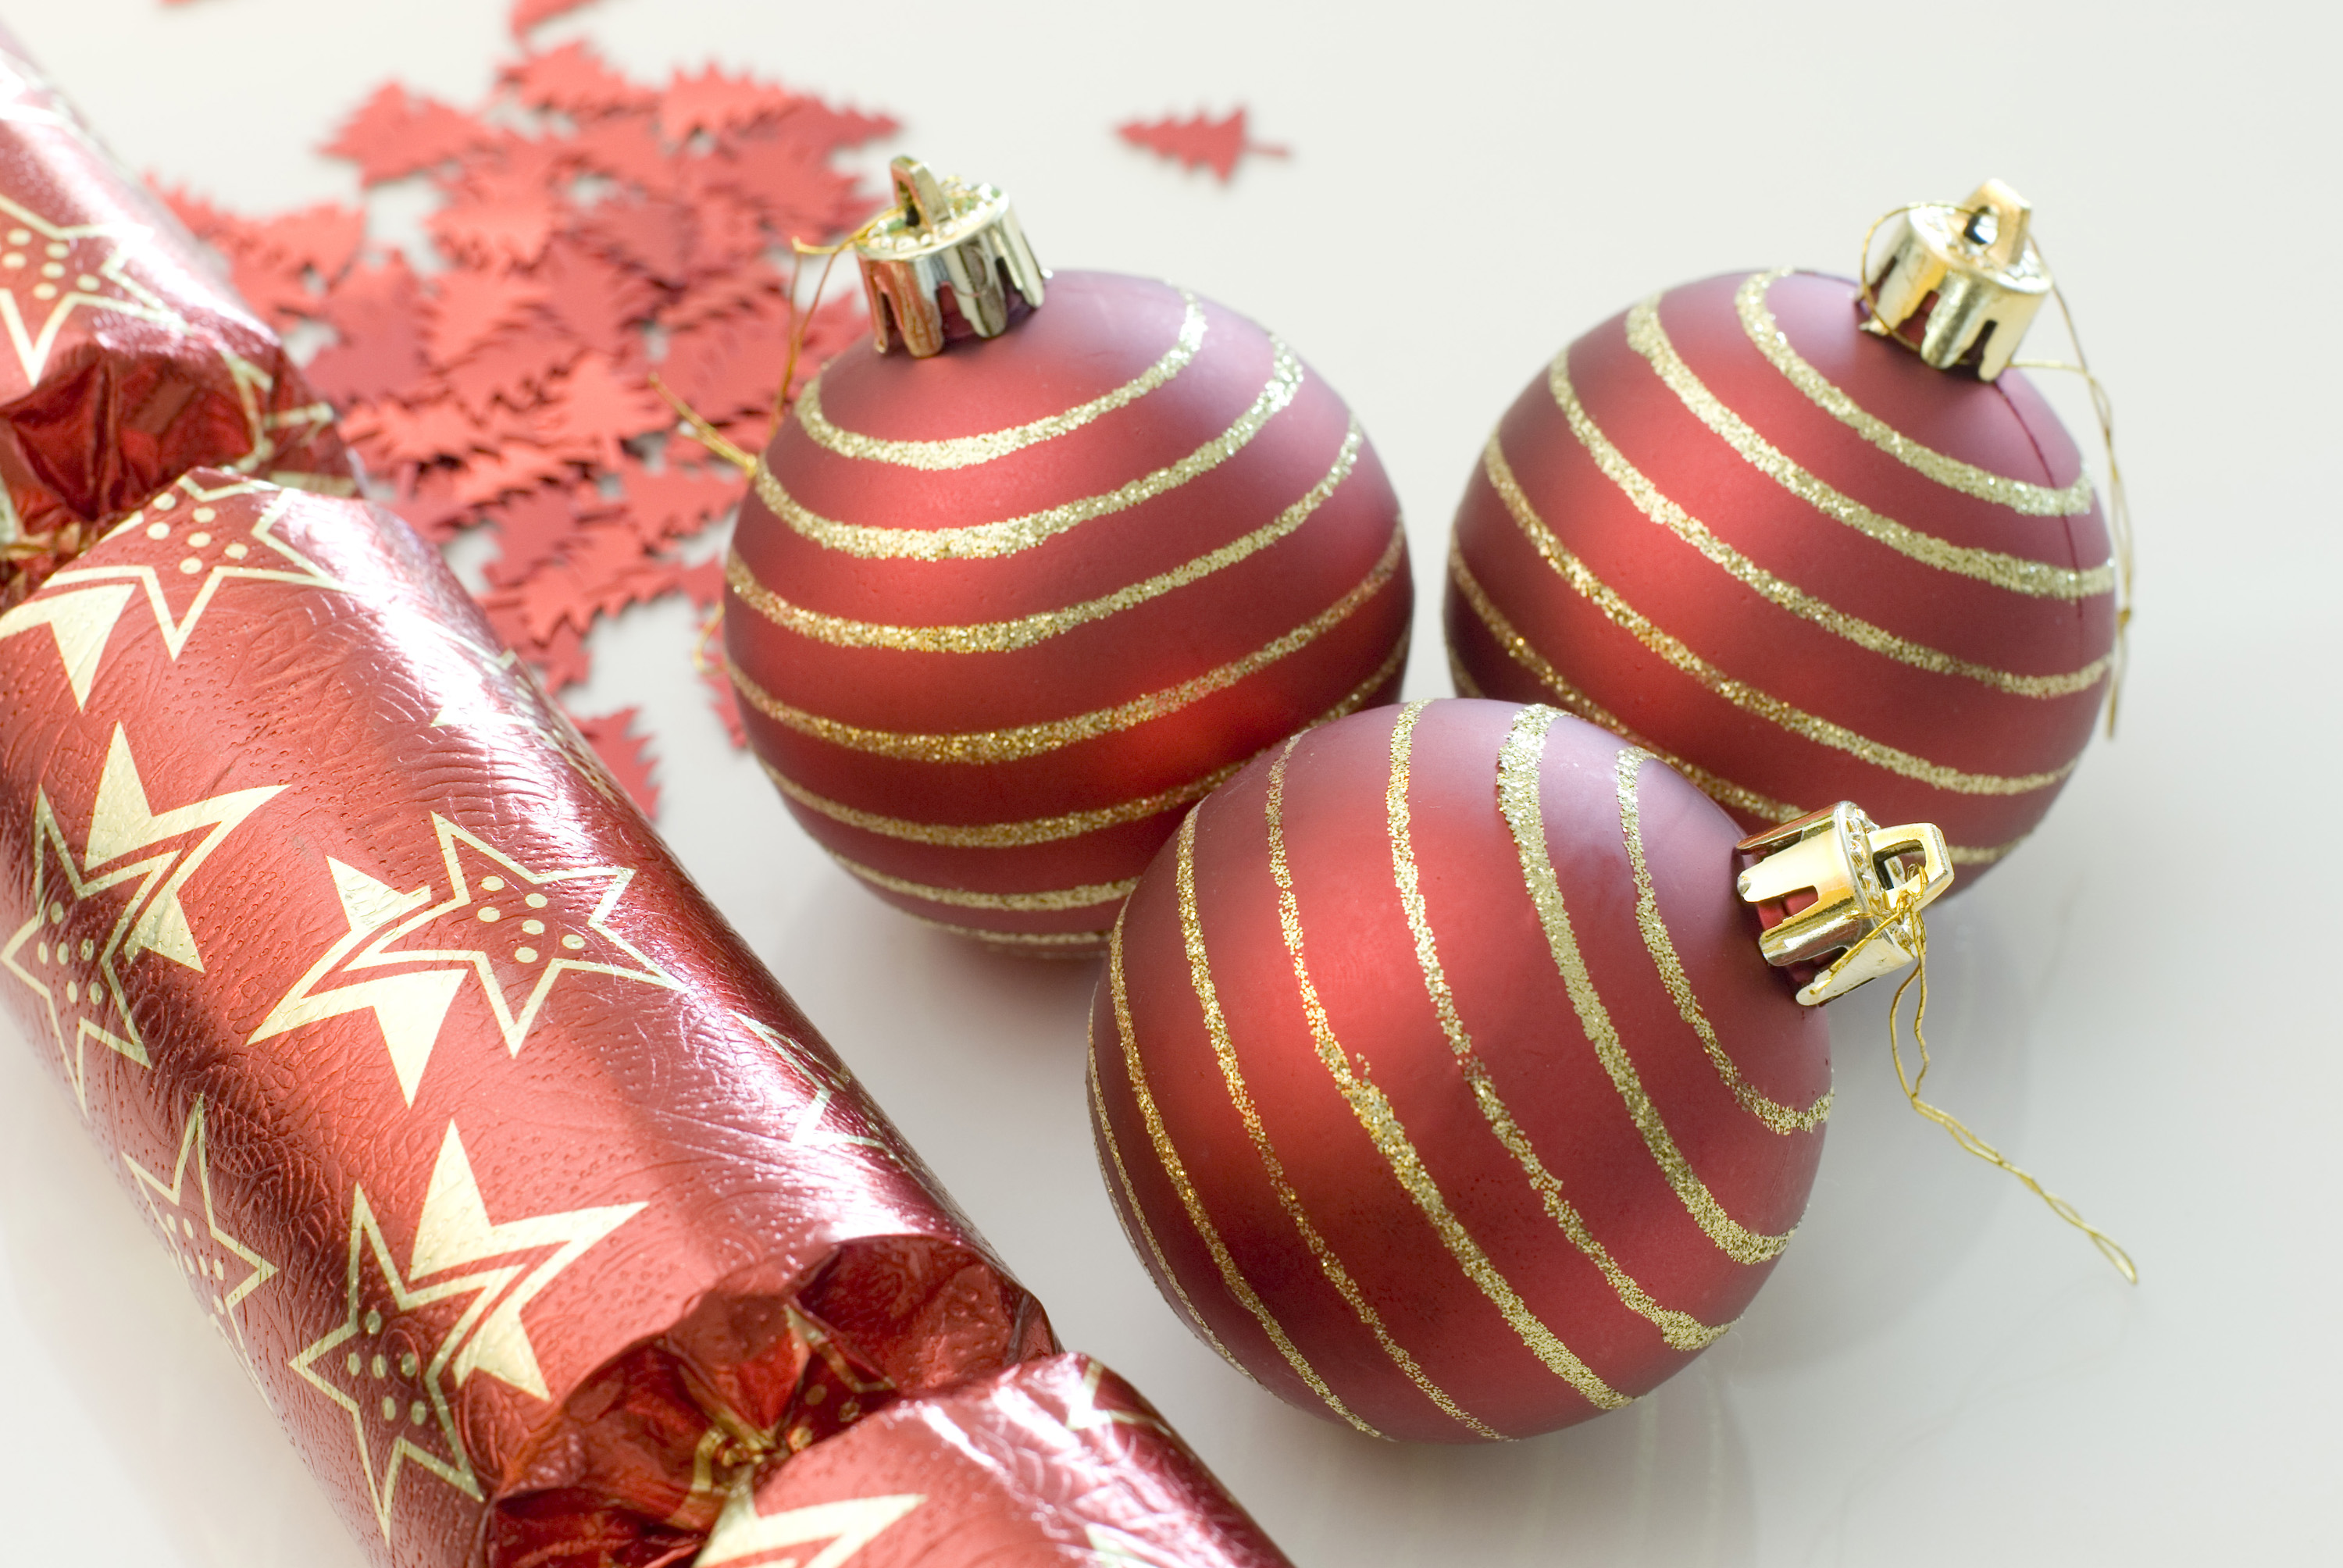 a selection of red coloured christmas balls, crackers and confetti glitter